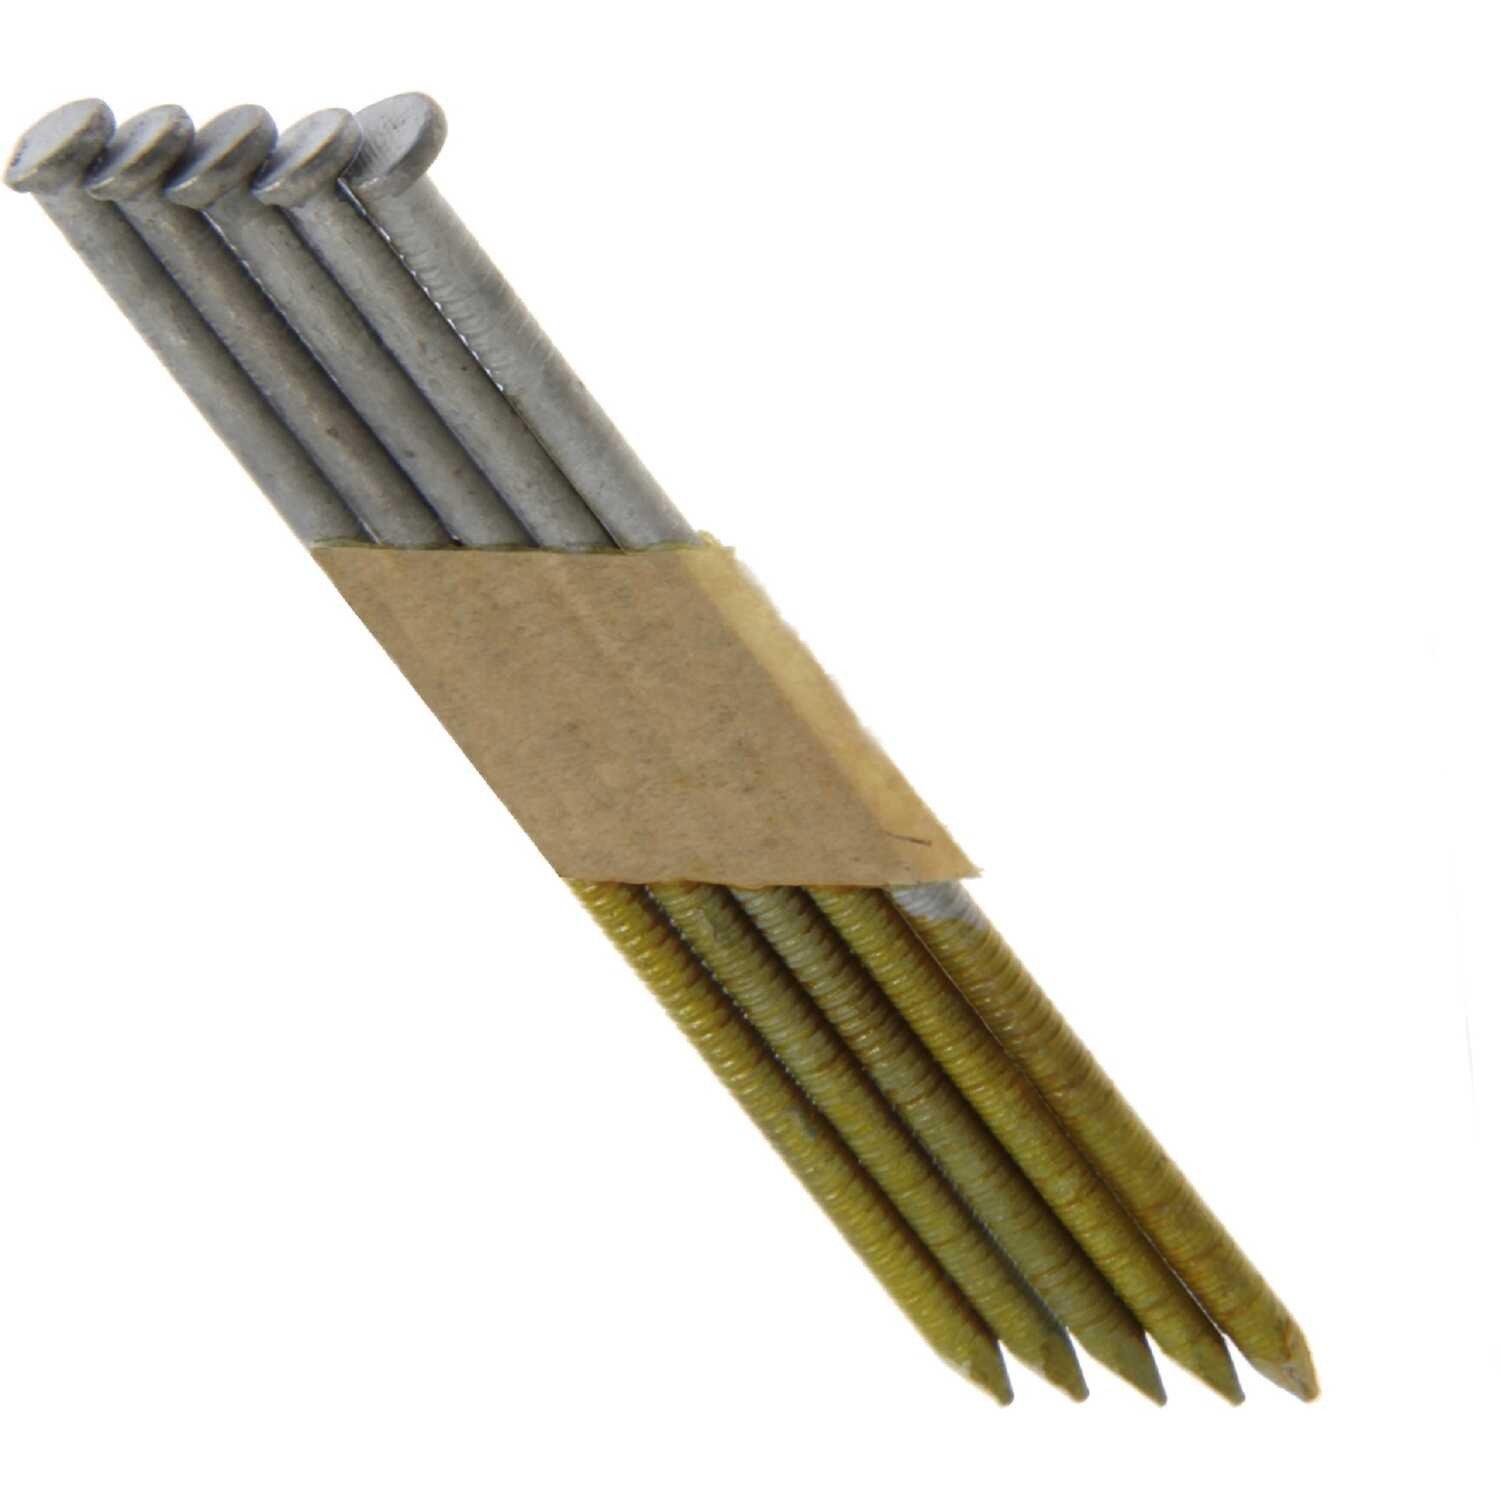 Grip-Rite  30 deg. 11-1/2 Ga. Ring Shank  Angled Strip  Framing Nails  2-3/8 in. L x 0.11 in. Dia. 1